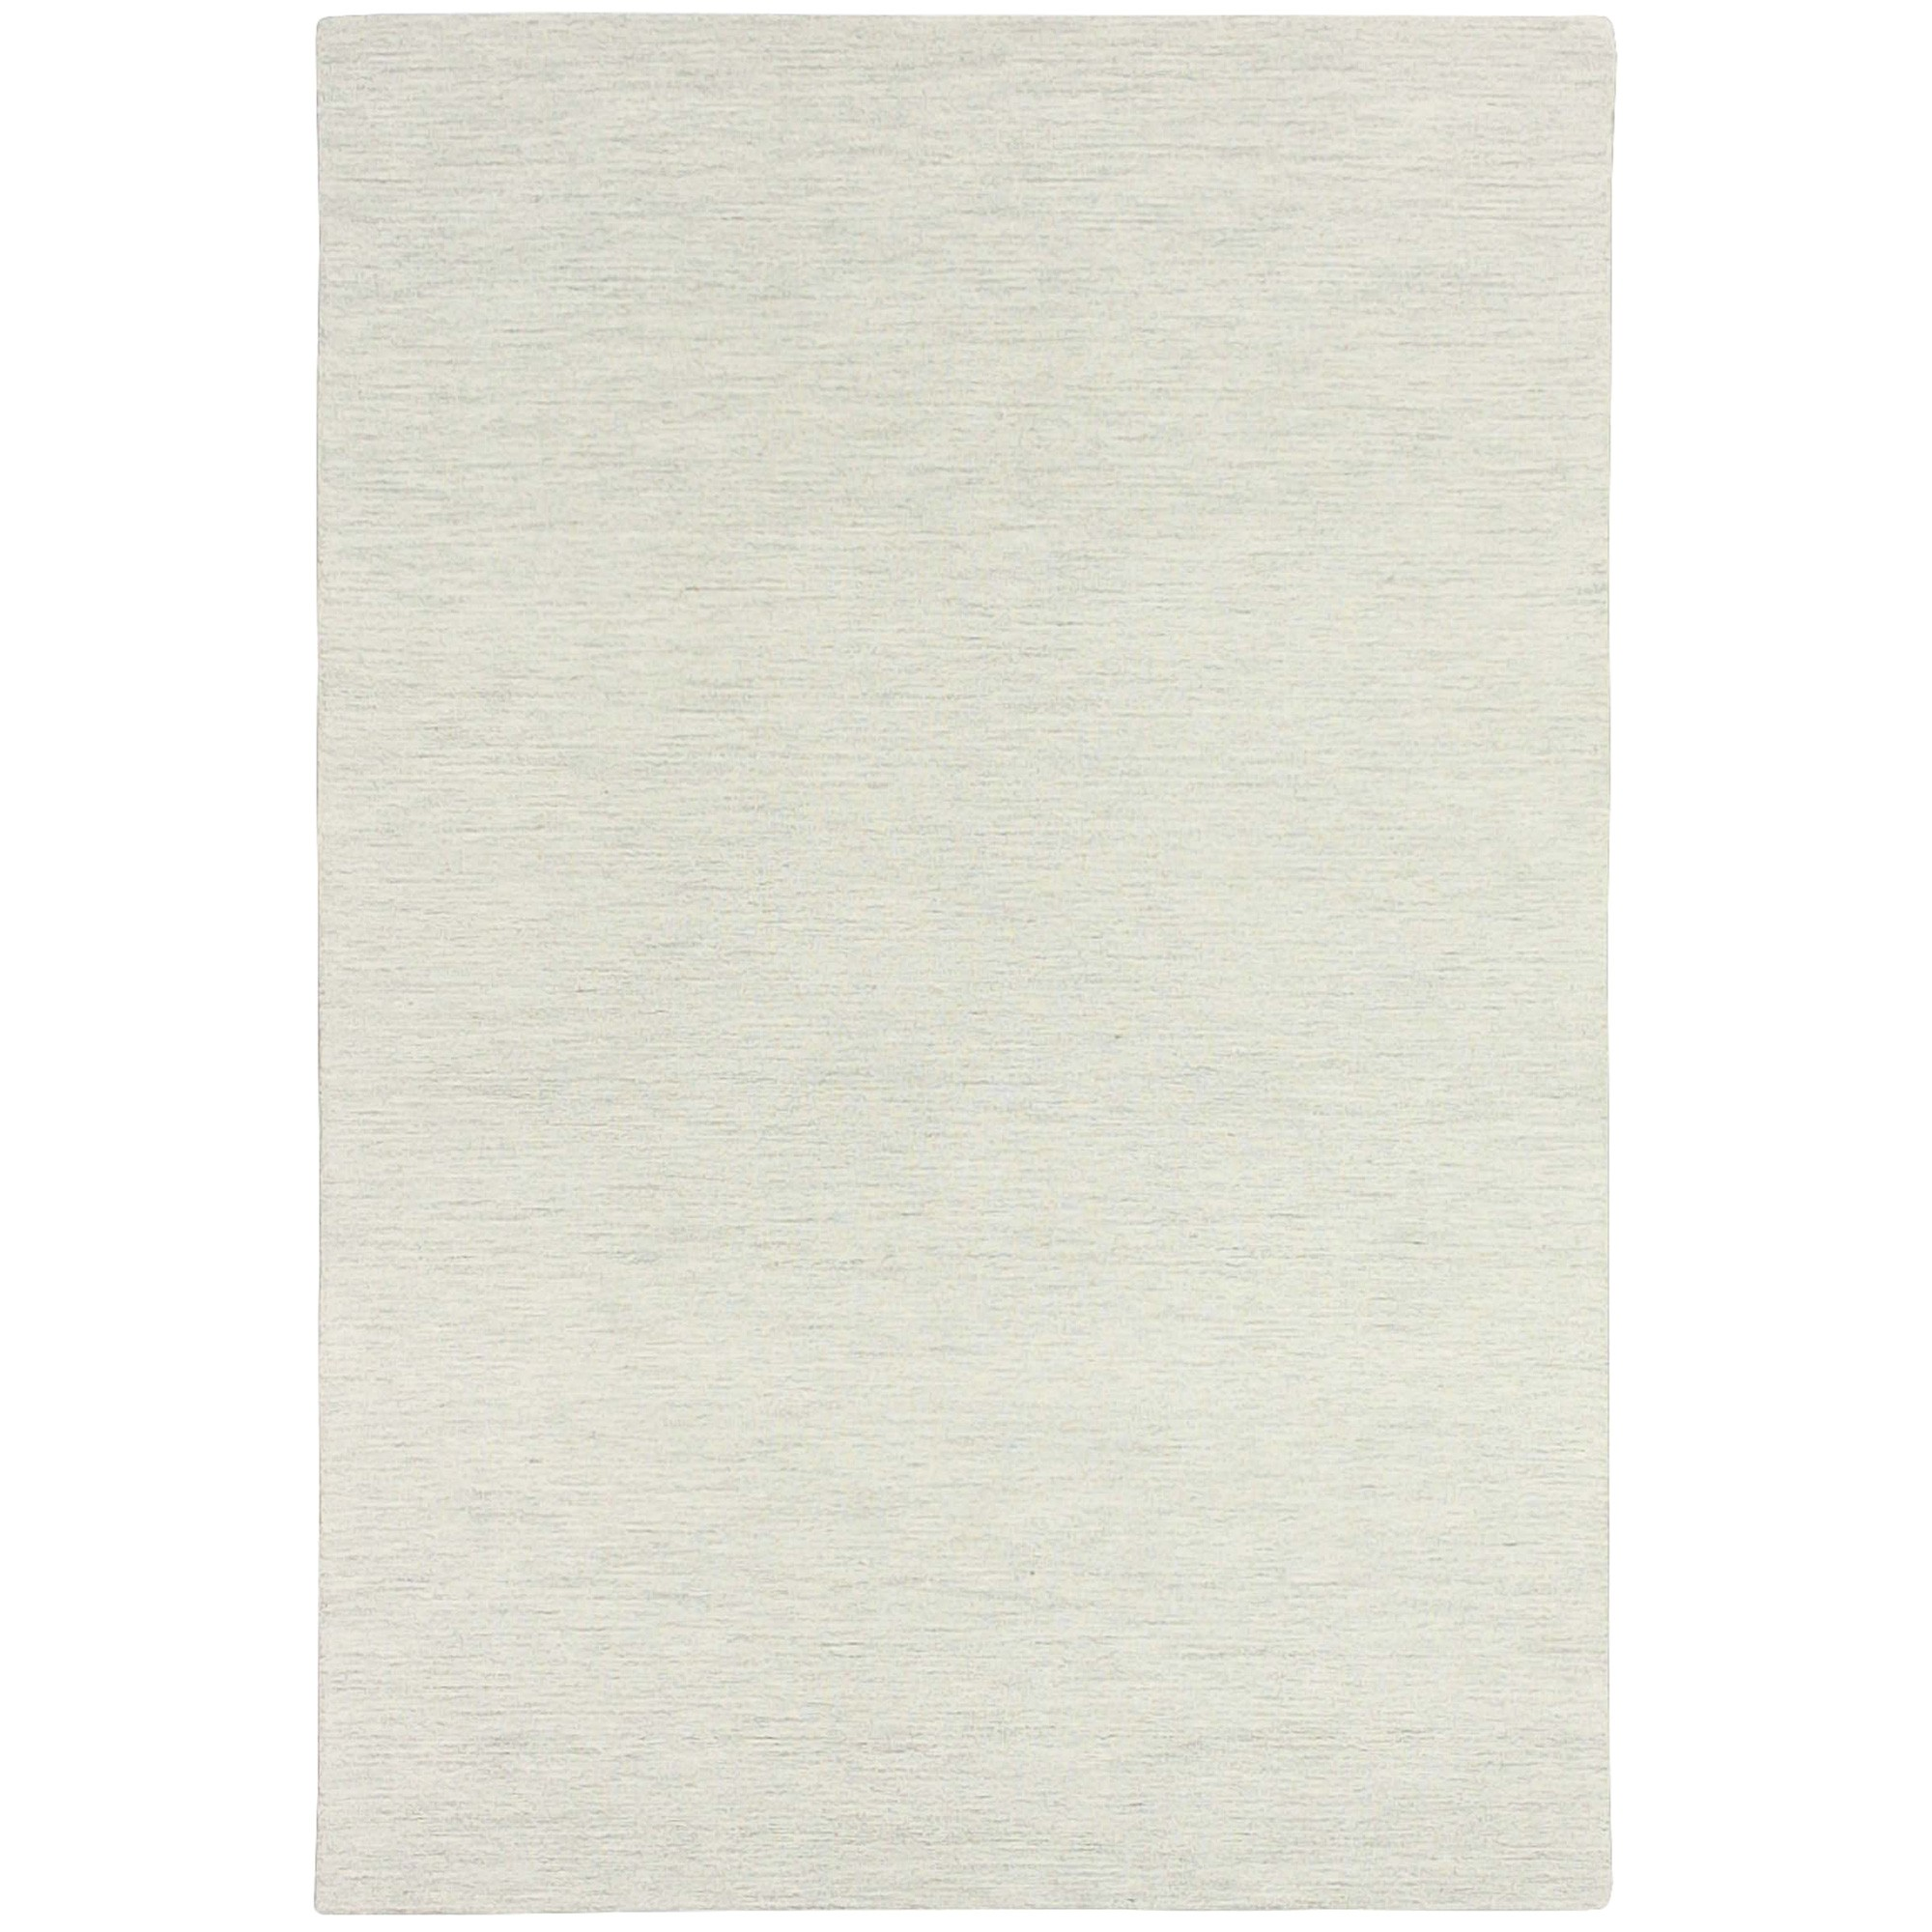 Marled Hand Tufted Wool Rug, 200x300cm, Snow